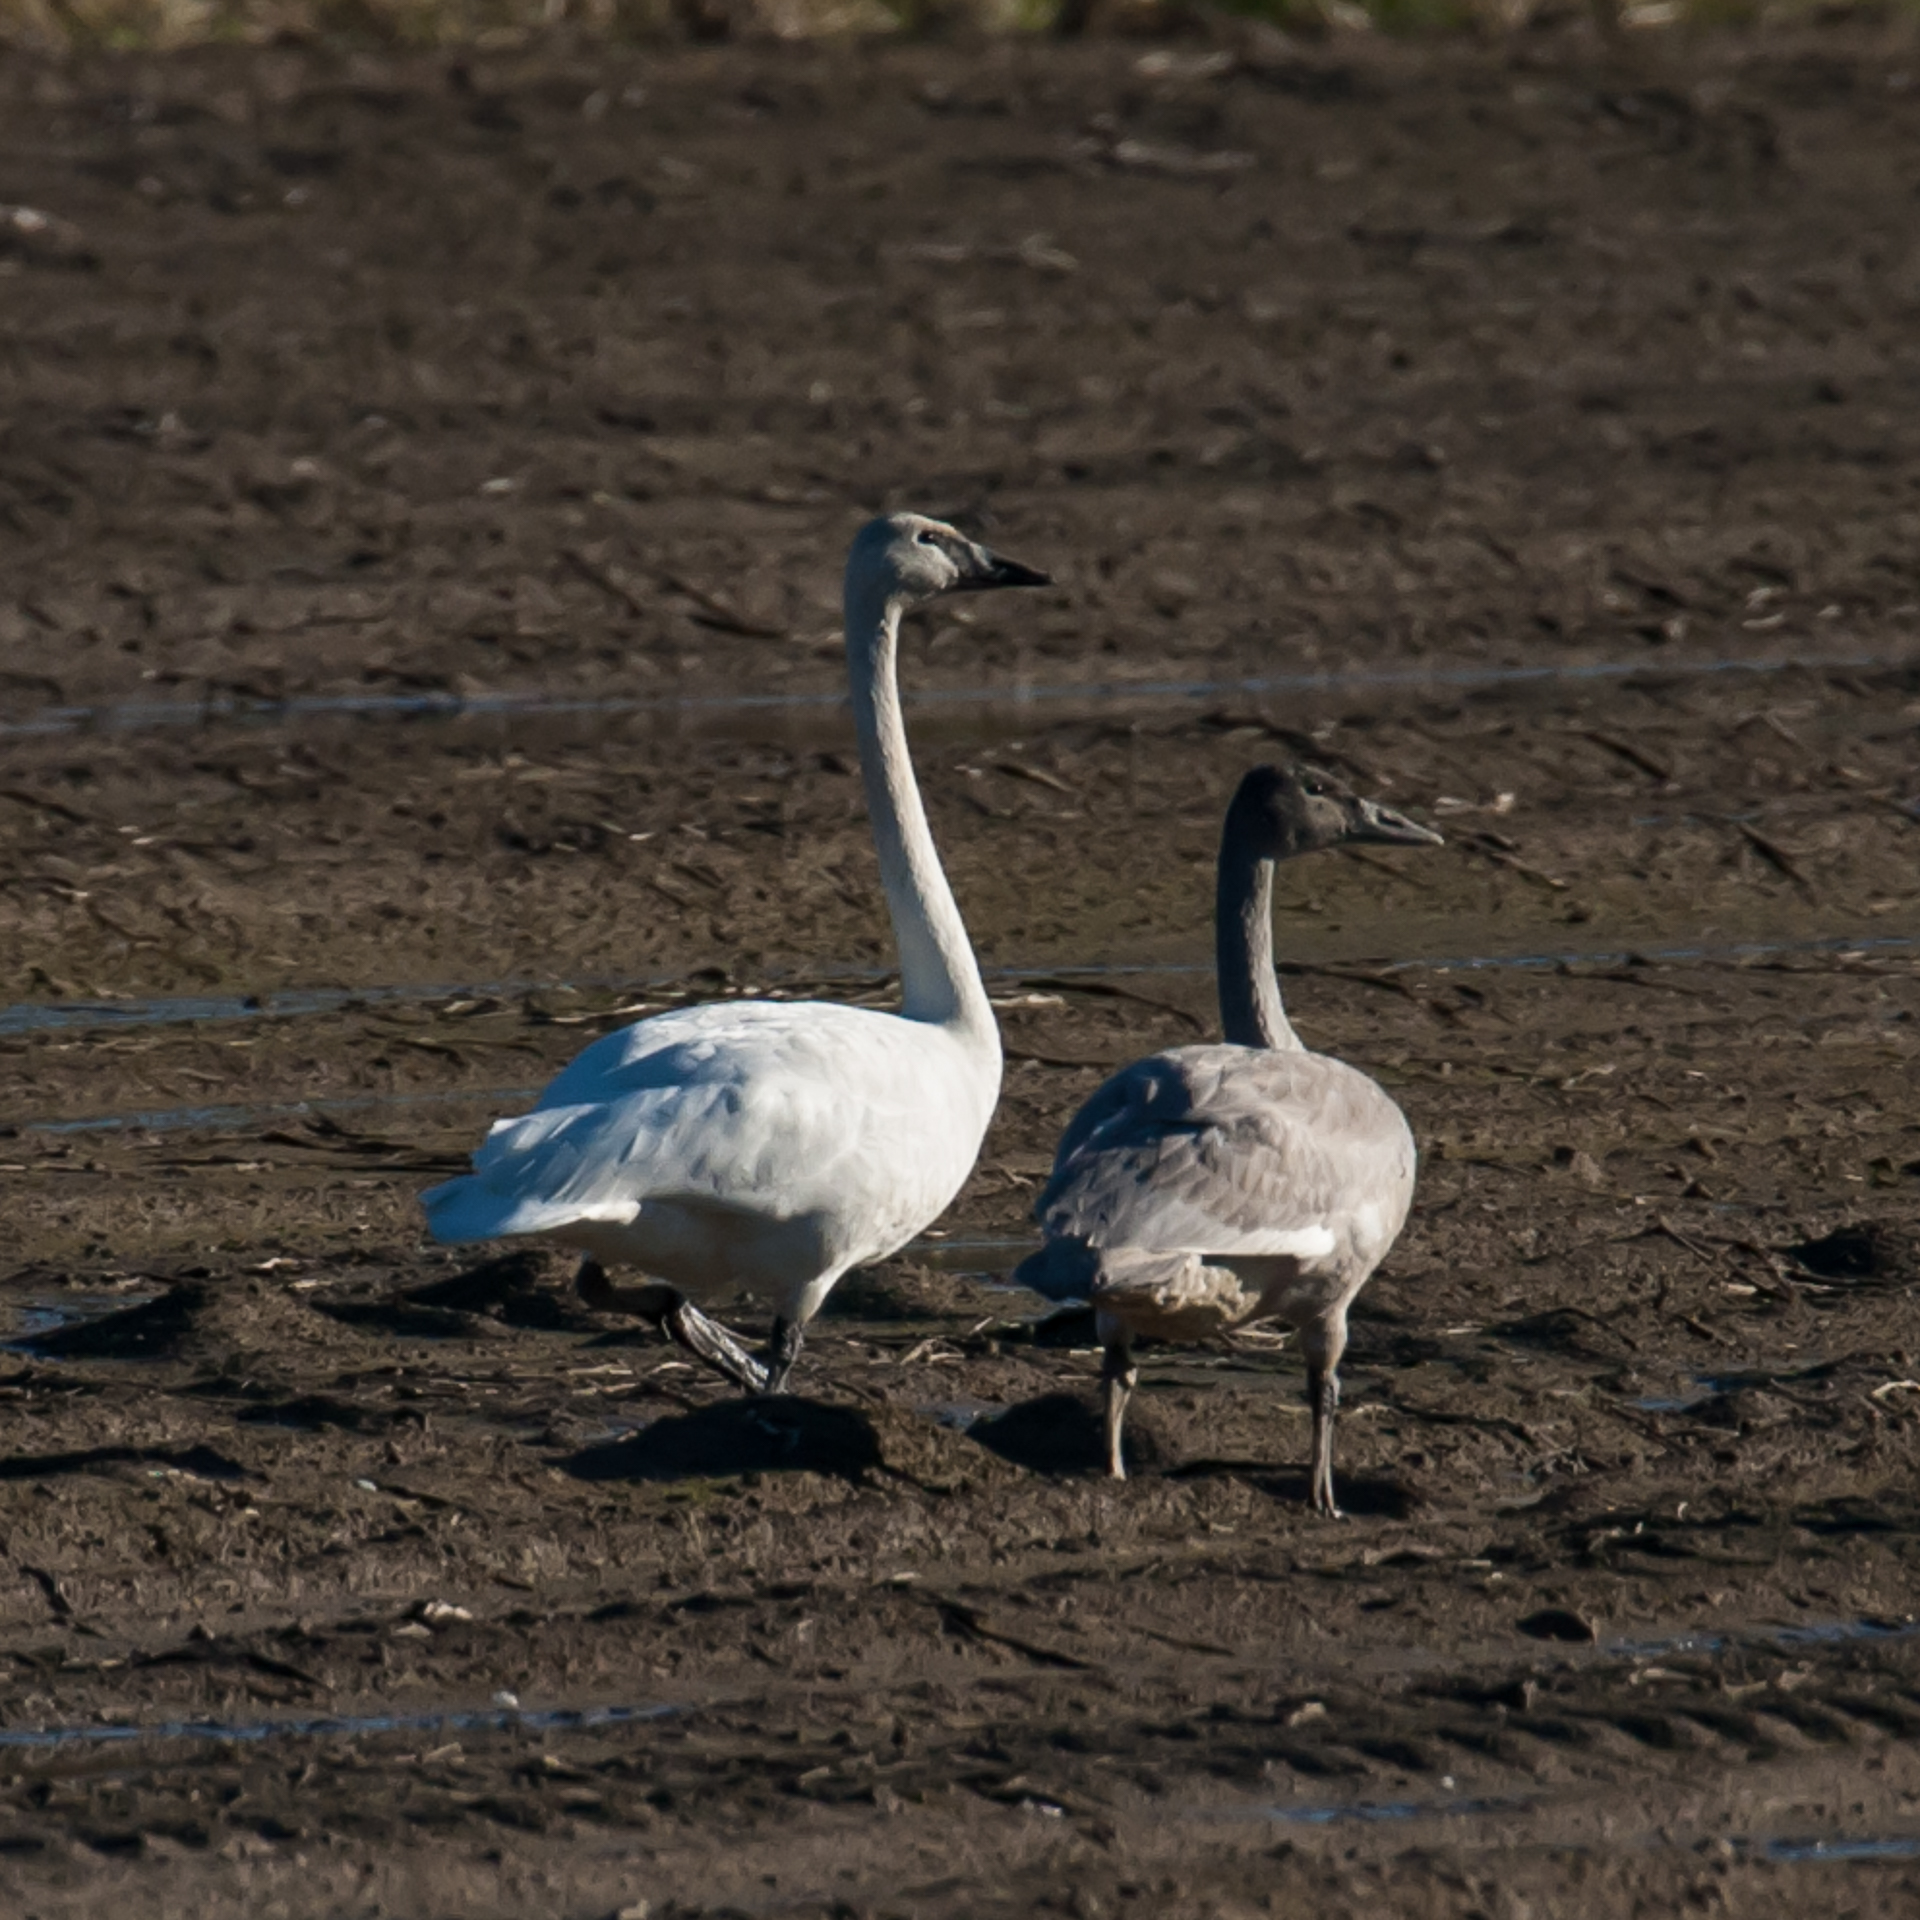 There were a number of trumpeter swans in the fields surrounding the sanctuary.